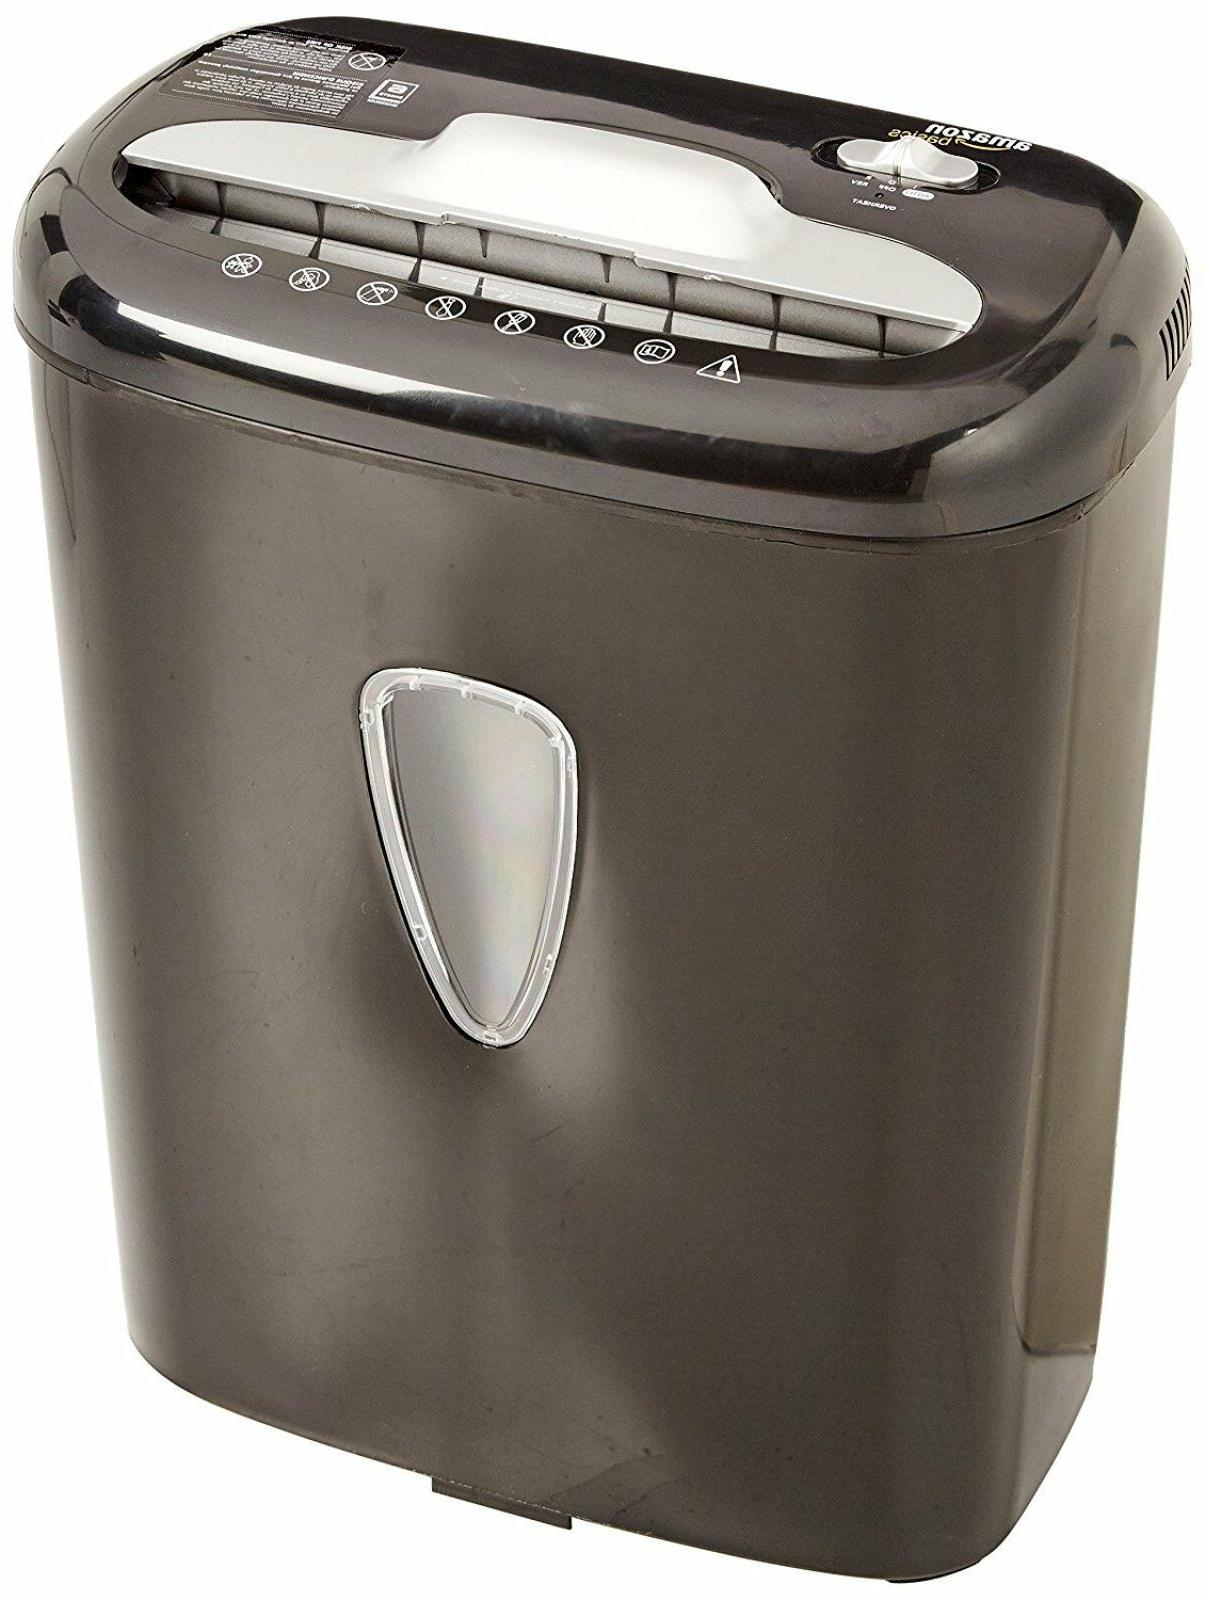 Paper Shredders For Home Use Office Credit Card Micro Cut 4.